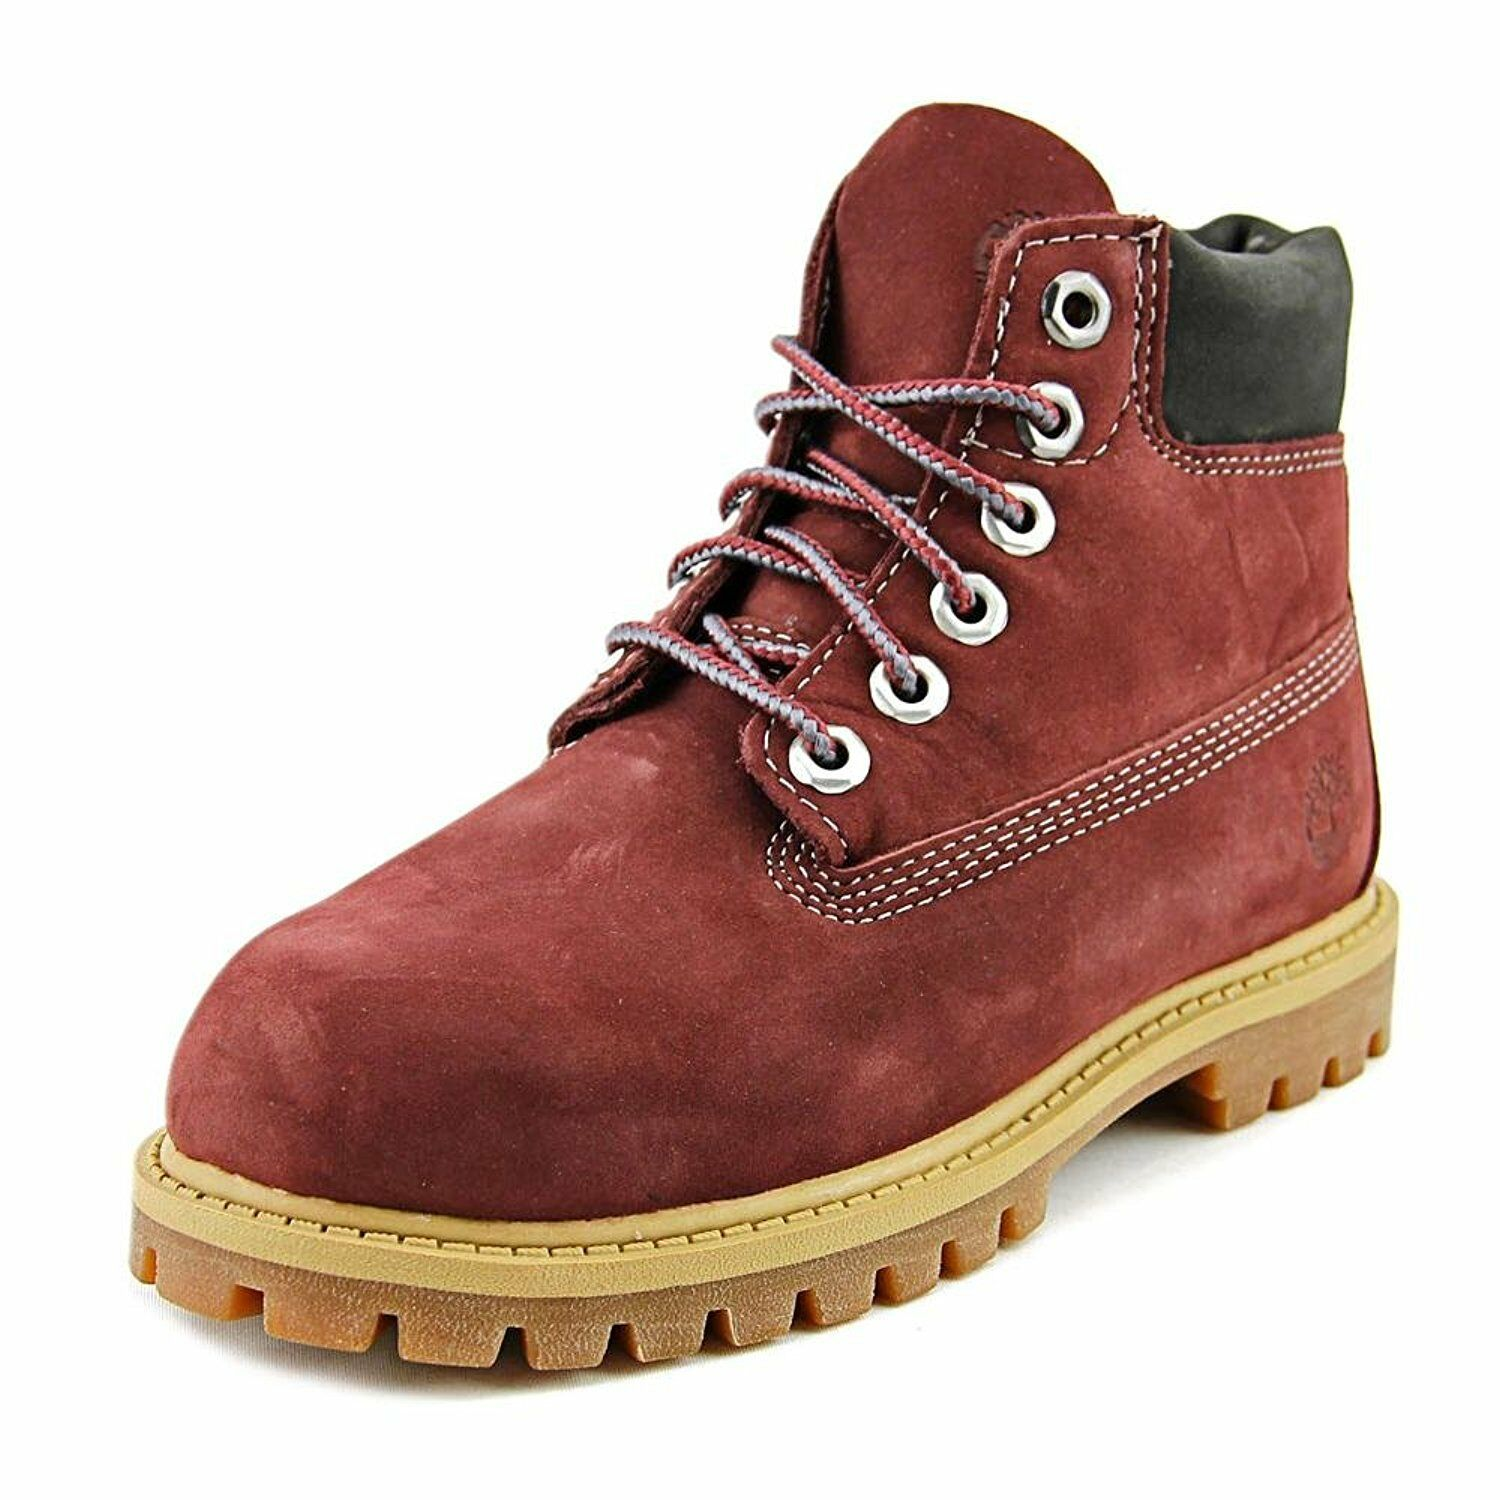 Timberland Toddlers 6 Inch Premium Waterproof Boot Dark Port Nubuck A1BCX